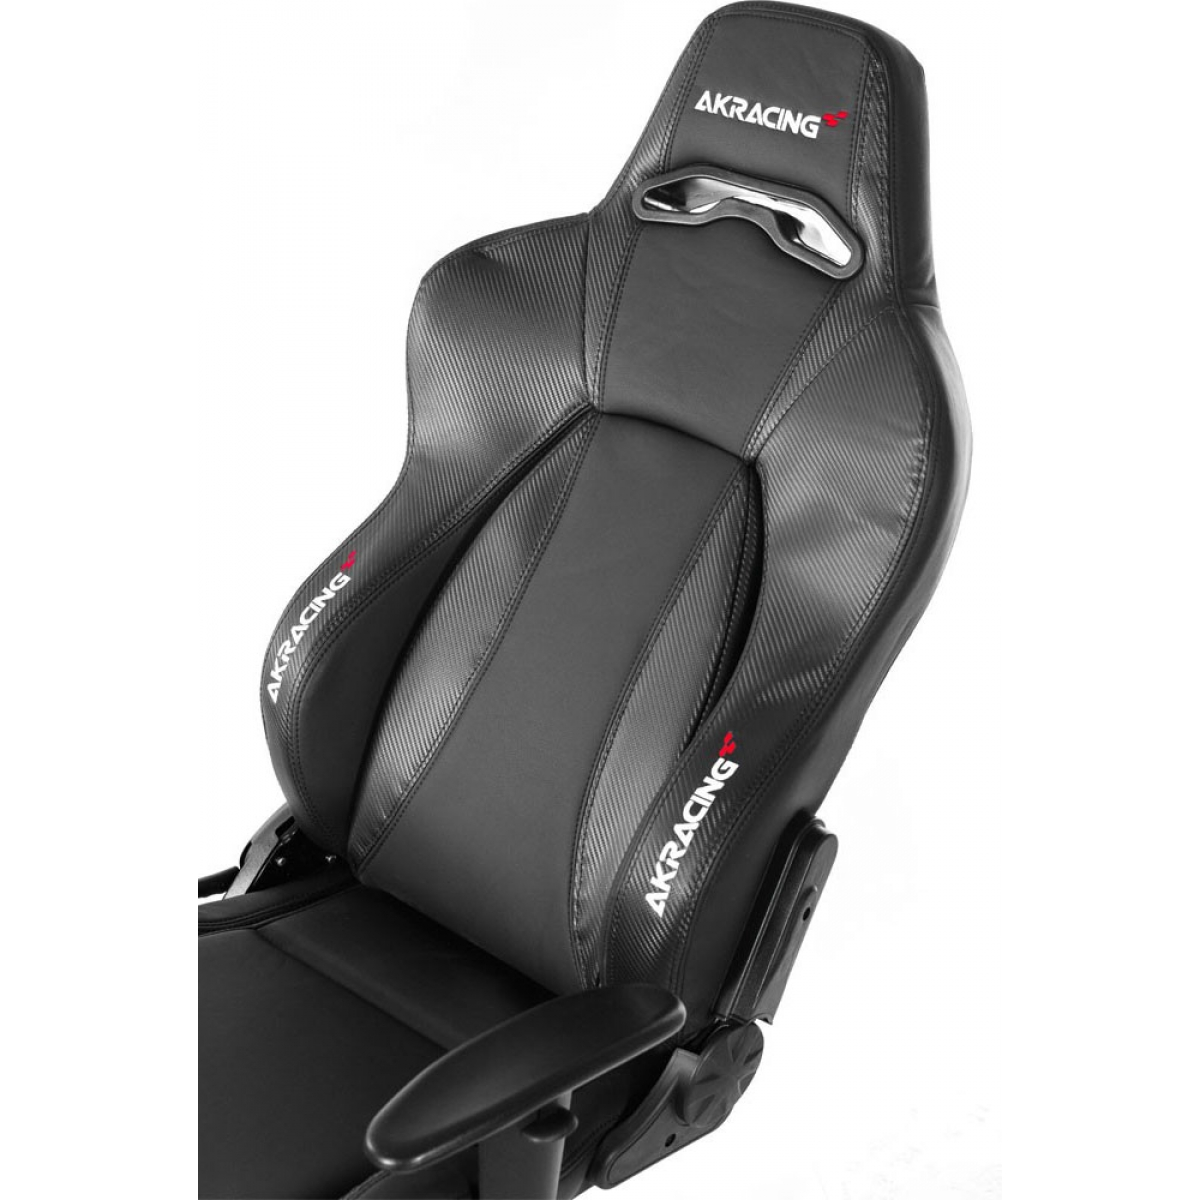 Cadeira Gamer AKRacing V2 Premium, Reclinável, Carbon Black, AK-7002-CB